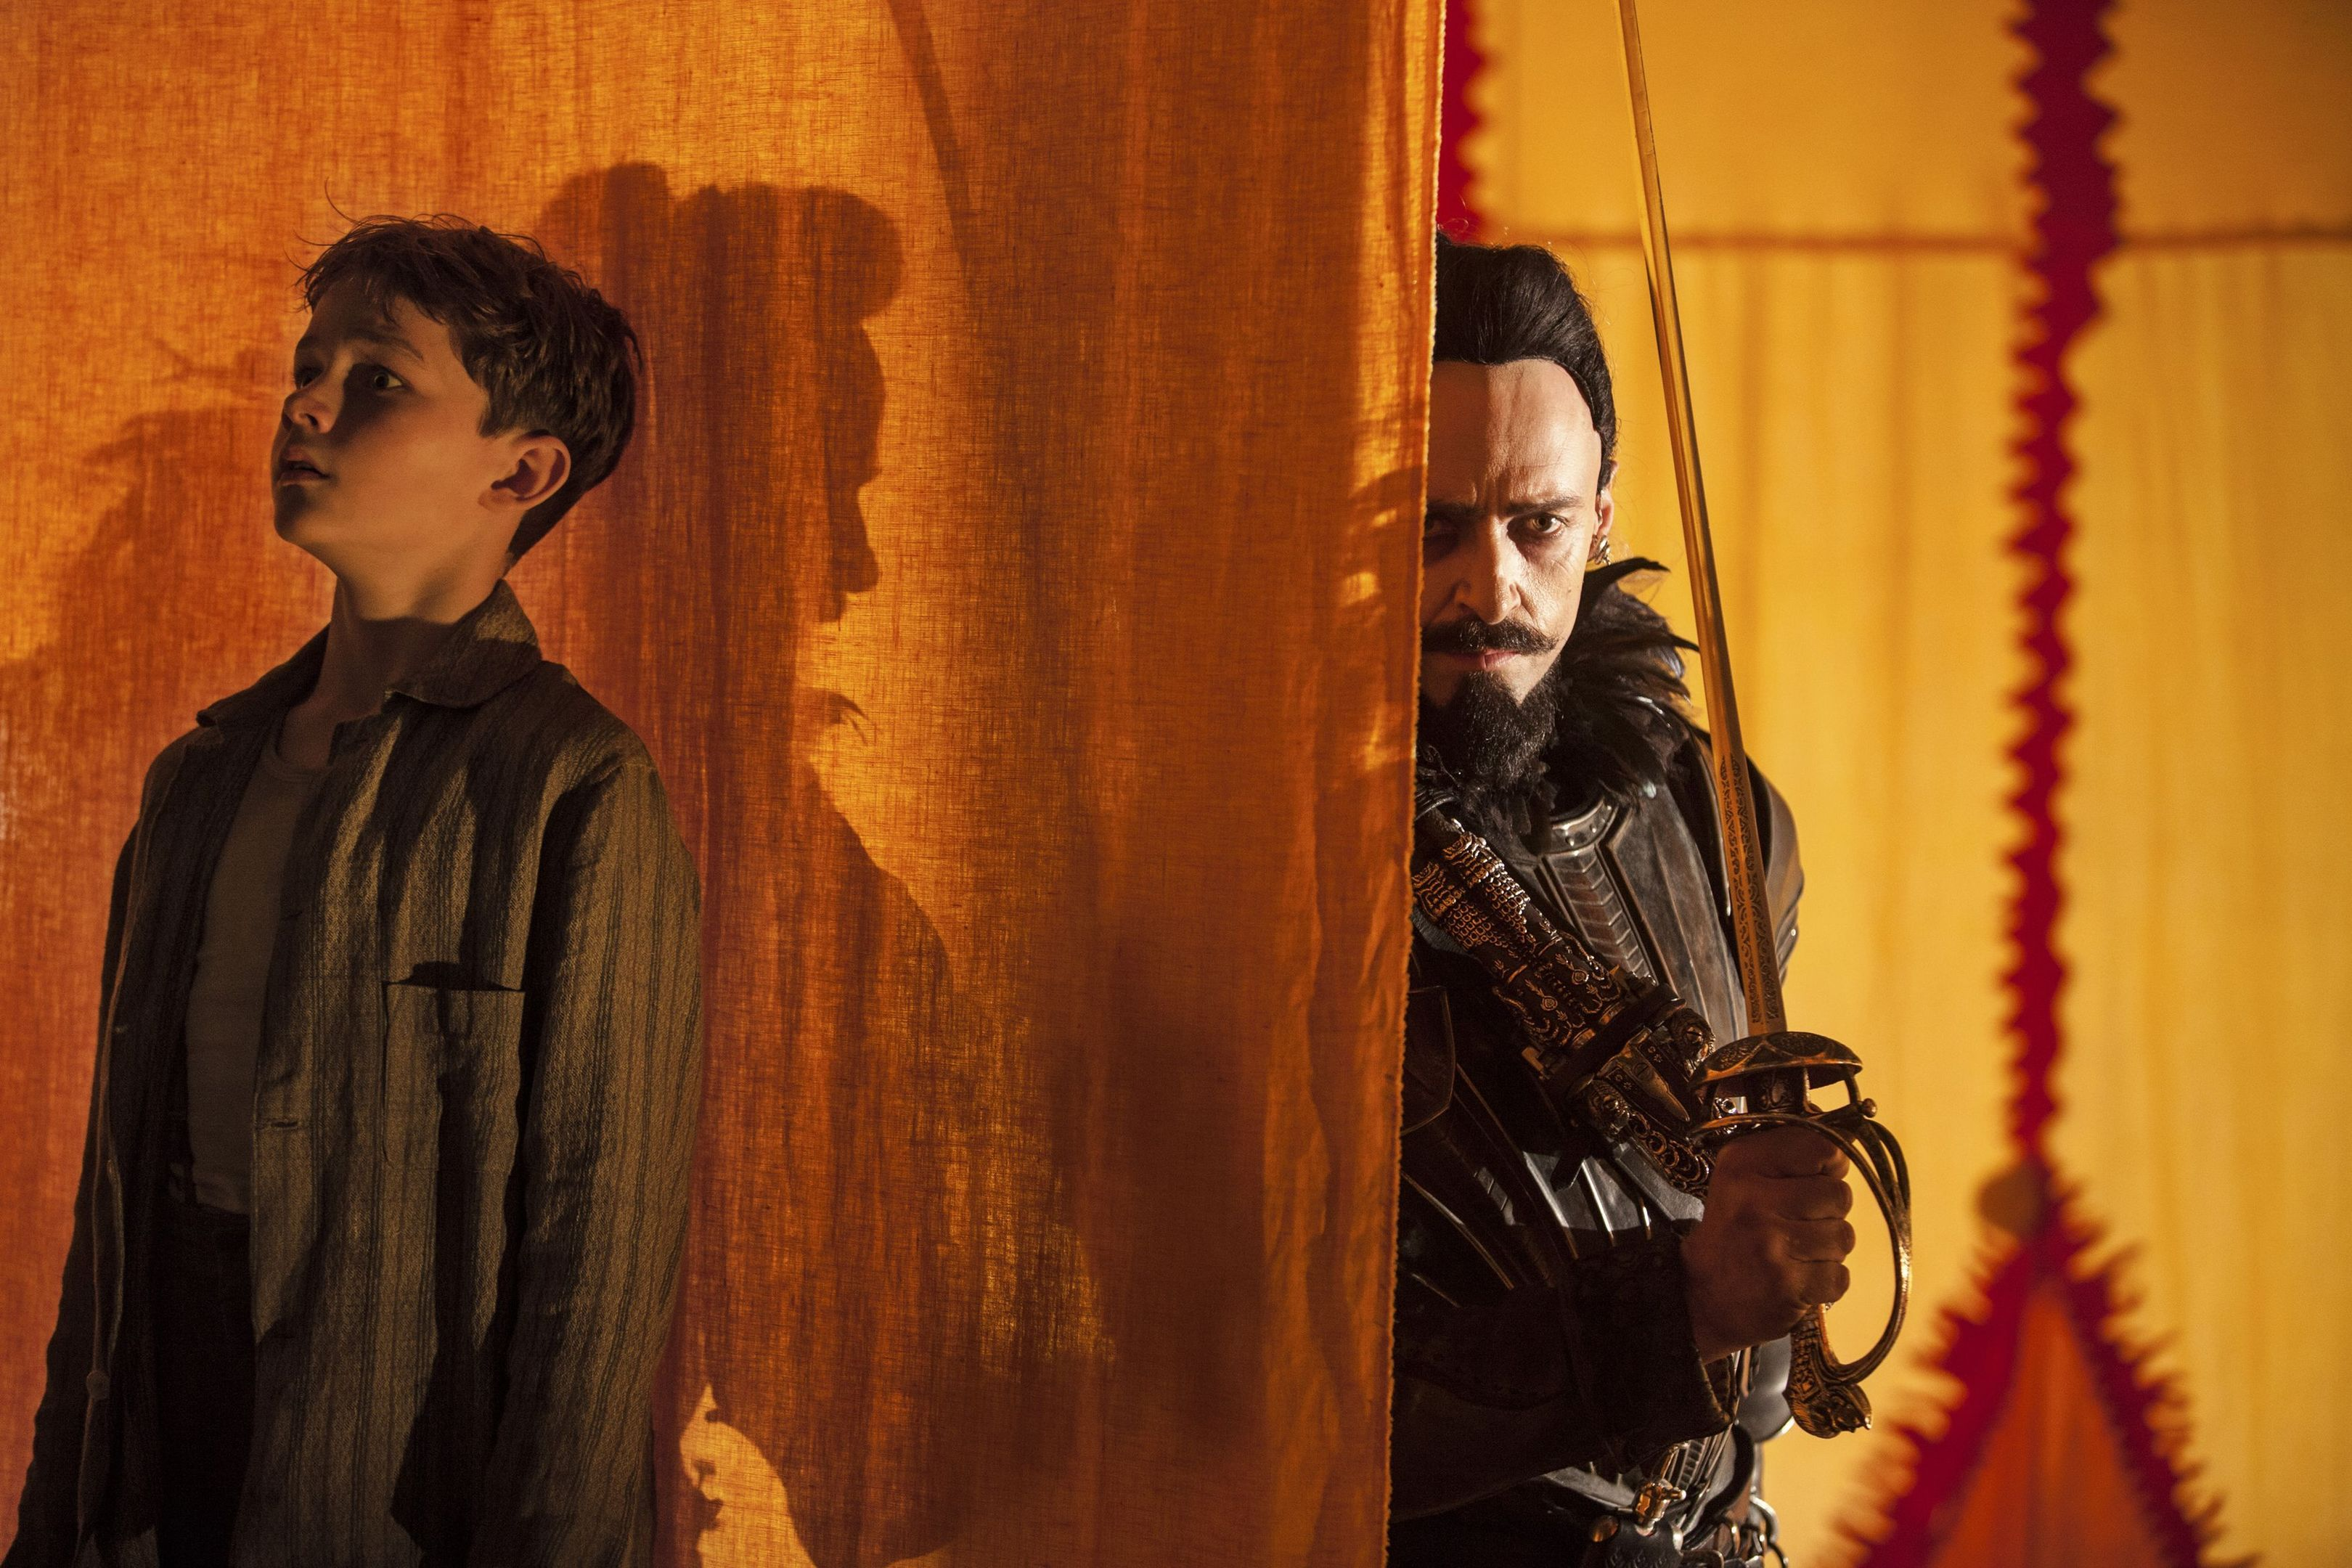 Peter Pan (Levi Miller) hides from Blackbeard (Hugh Jackman)  in a scene from Pan.